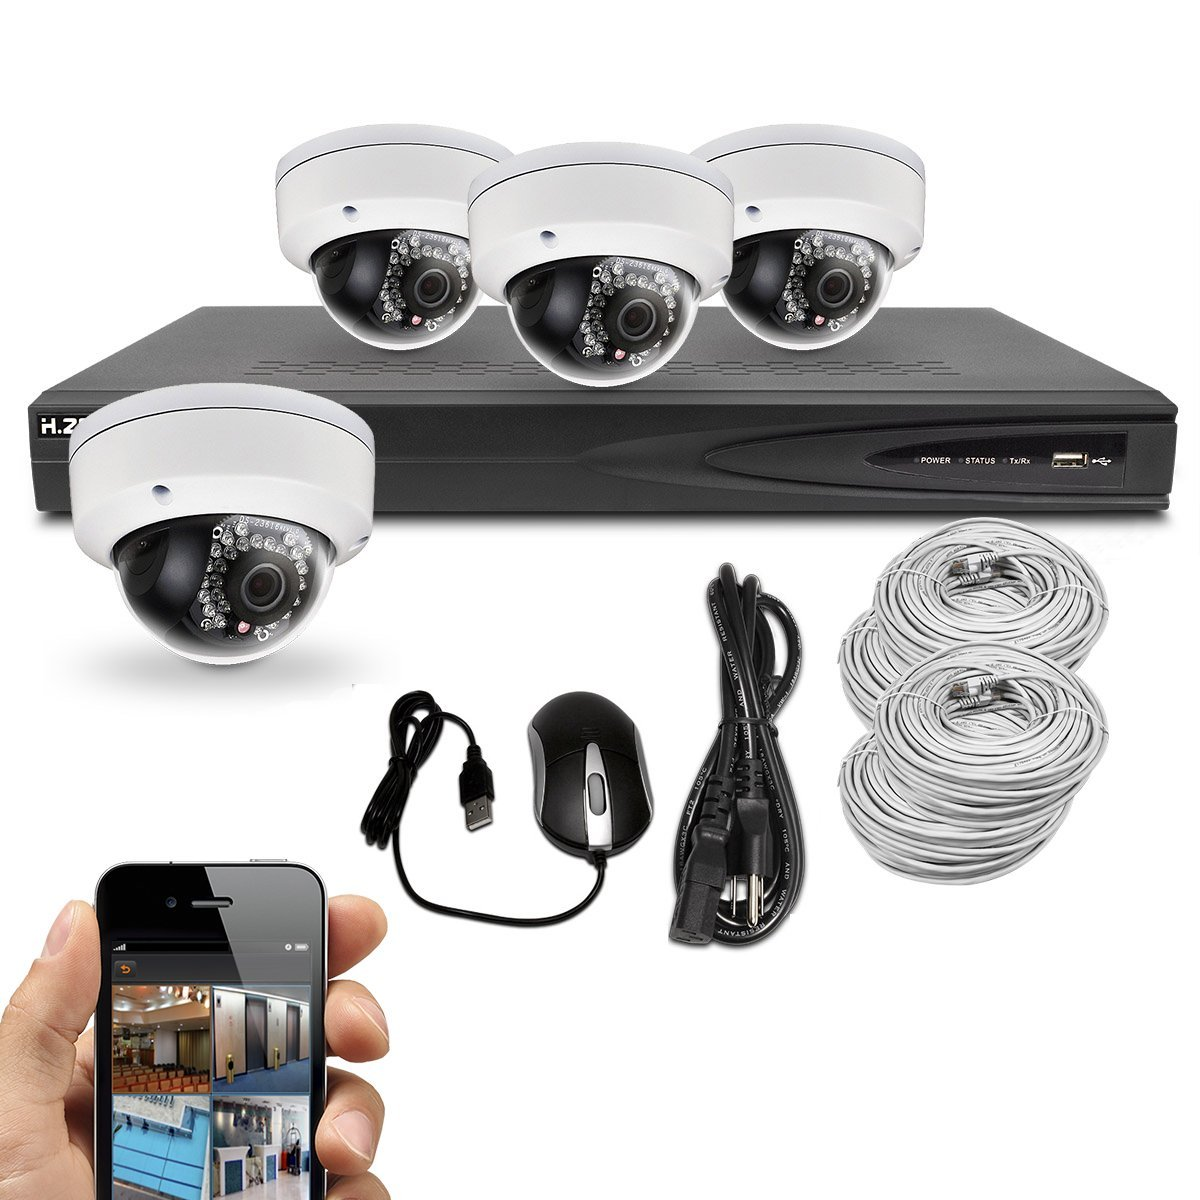 Best Vision Systems 8ch 1tb Ip Nvr Security Camera W 15 Surveillance System With 4 2mp Poe Outdoor Vandalproof Dome Cameras Photo